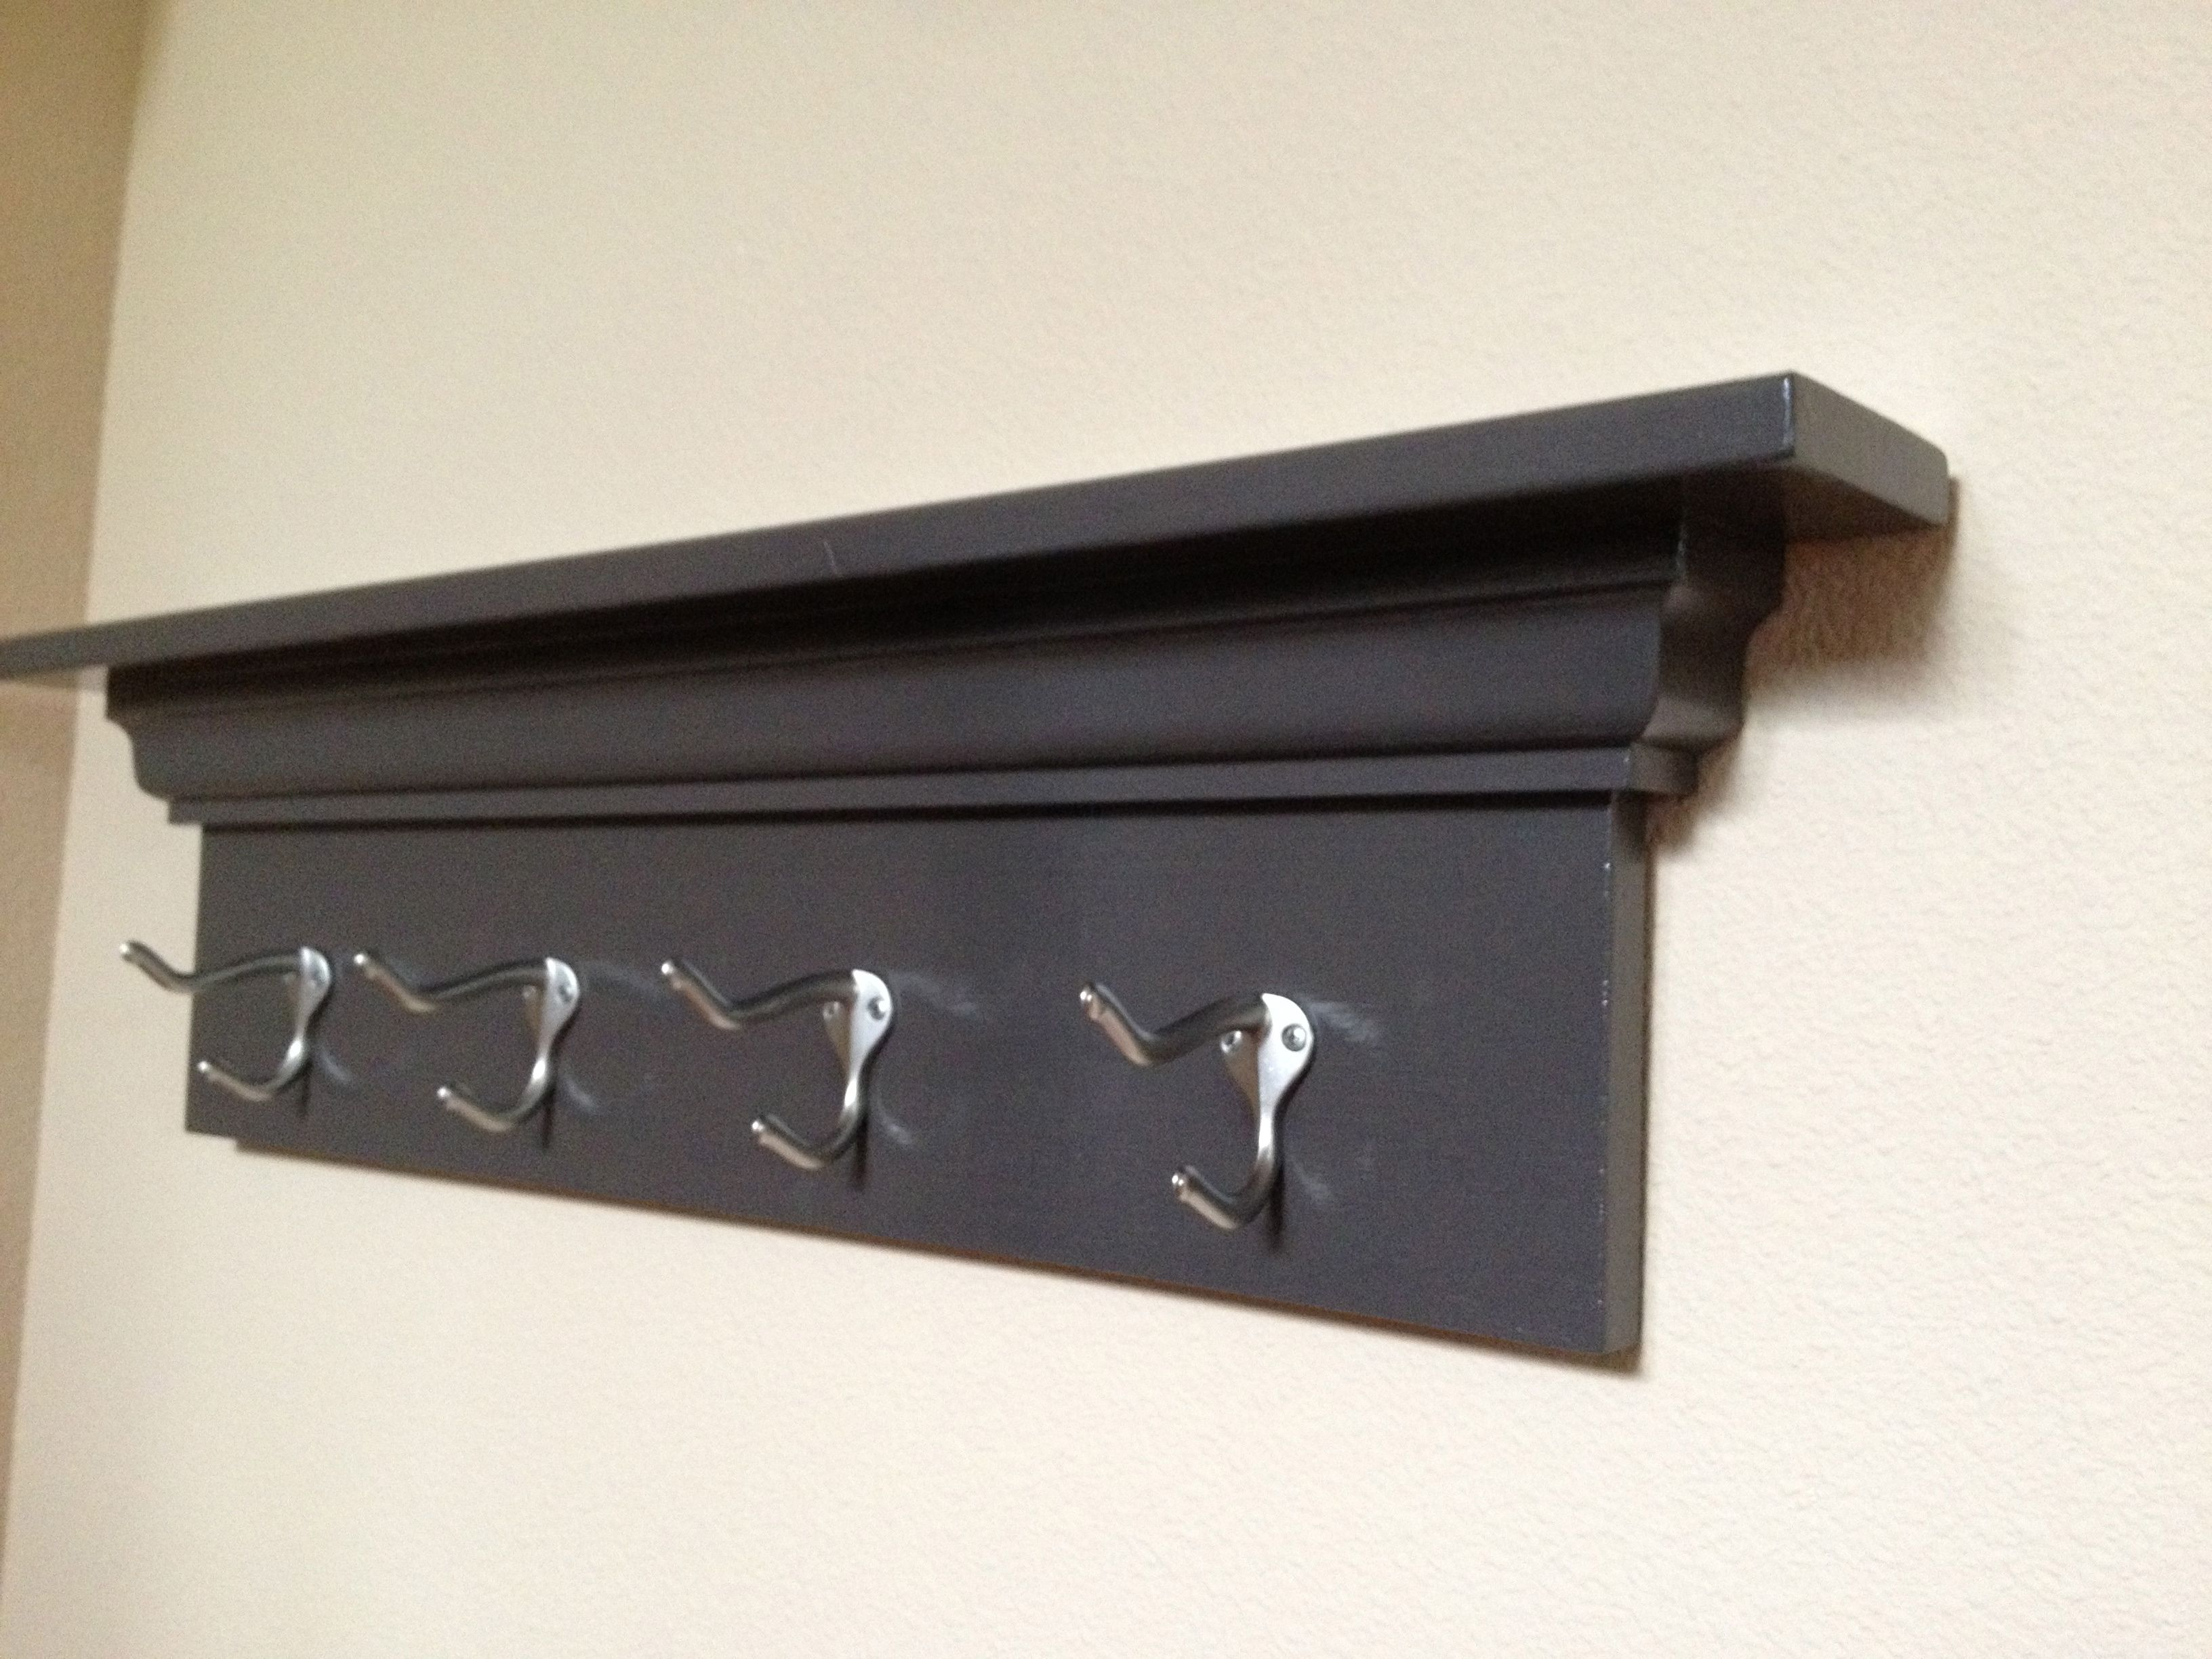 Ana White Simple Coat Rack Diy Projects Diy Coat Rack Coat Rack Wall Wooden Coat Rack